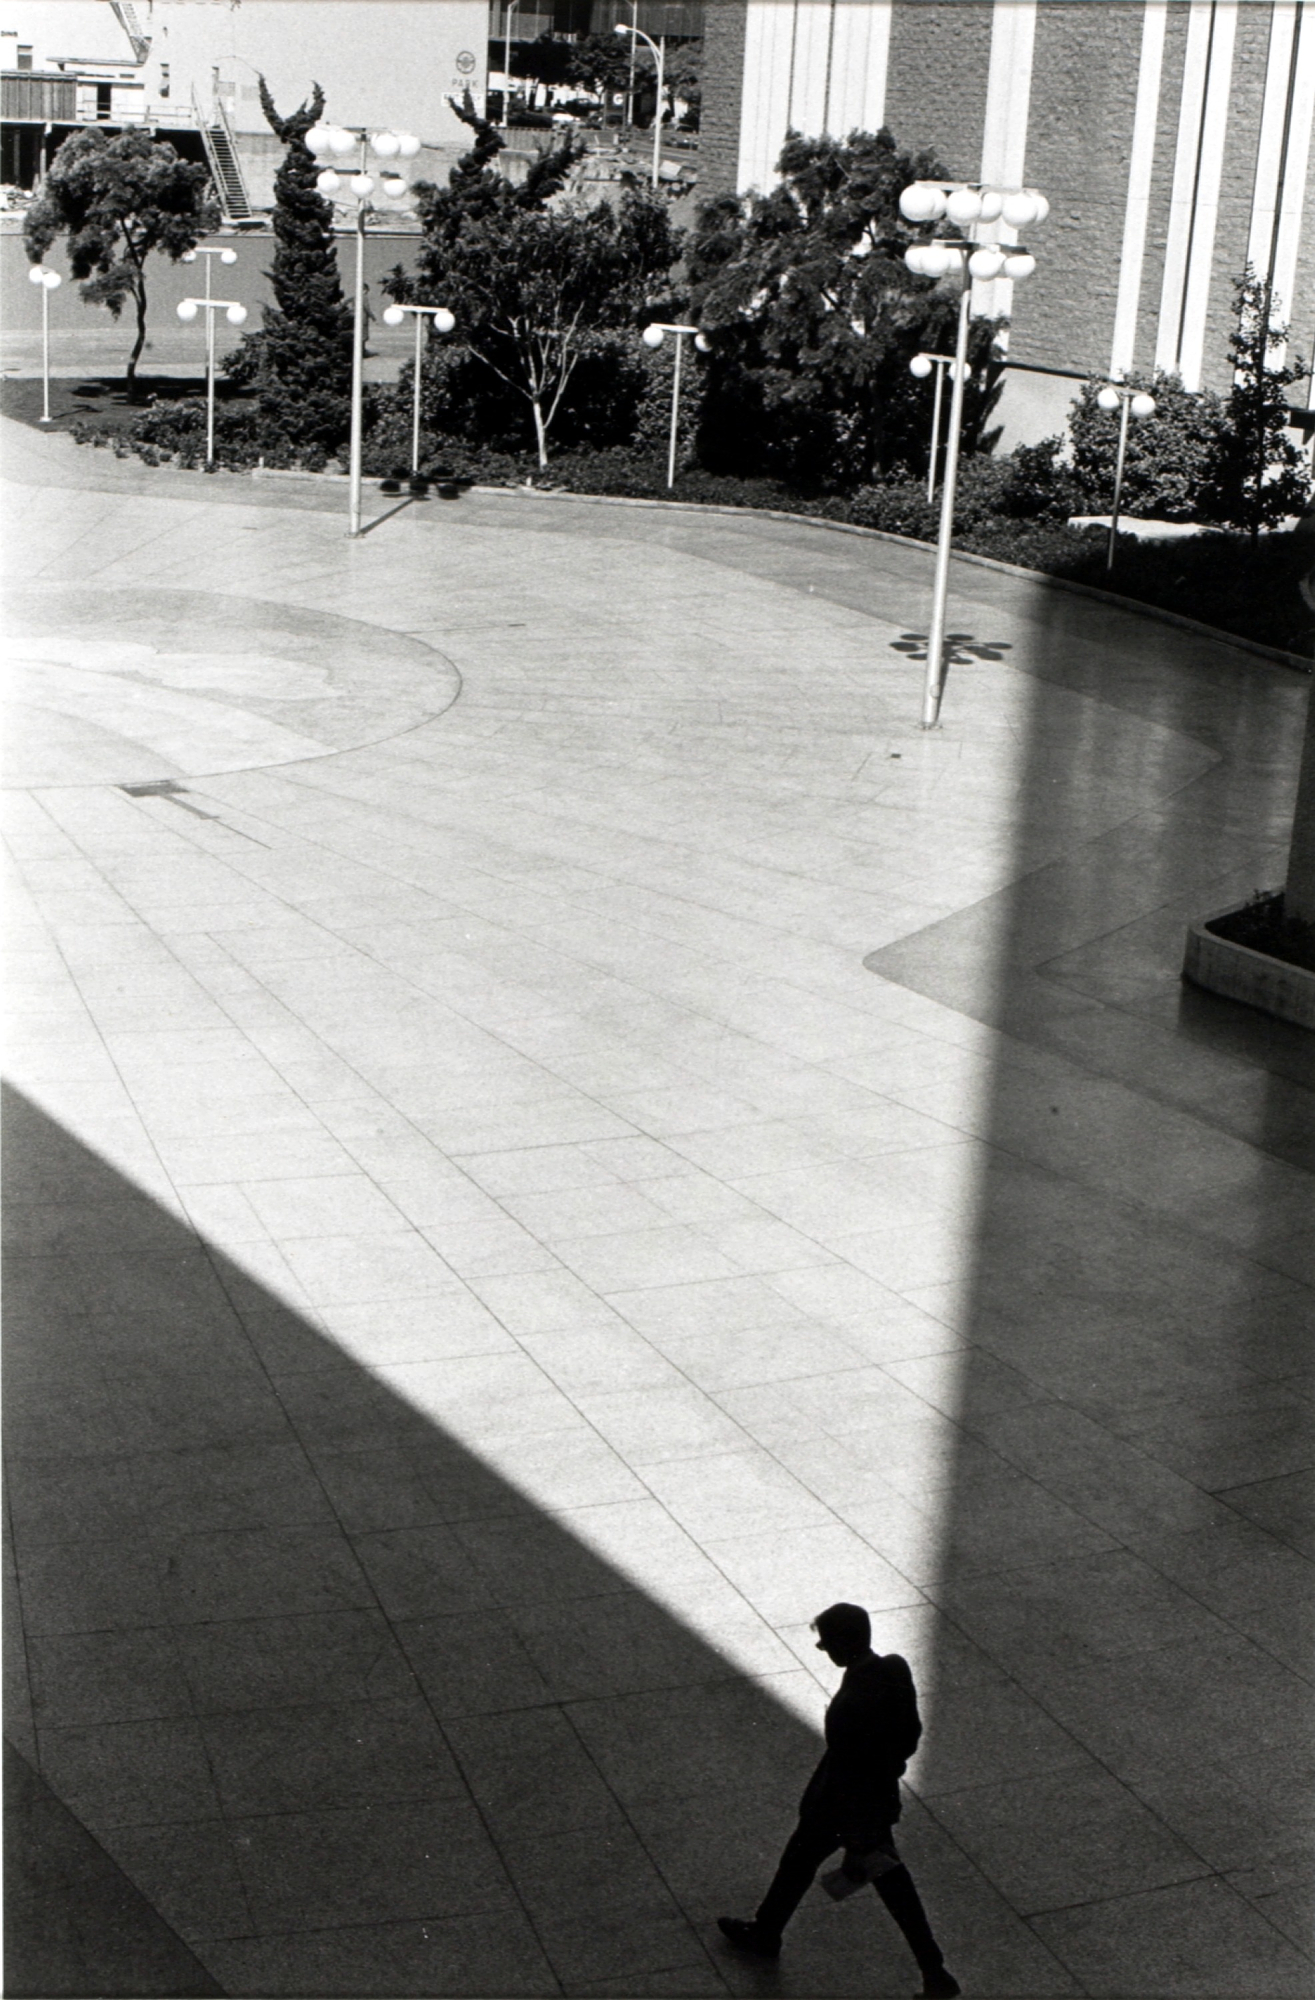 Alvin Lieberman, San Diego (Plaza, Man Walking), 1971, gelatin silver print, Smithsonian American Art Museum, ©1971, Al Lieberman, Transfer from the National Endowment for the Arts, 1983.63.887